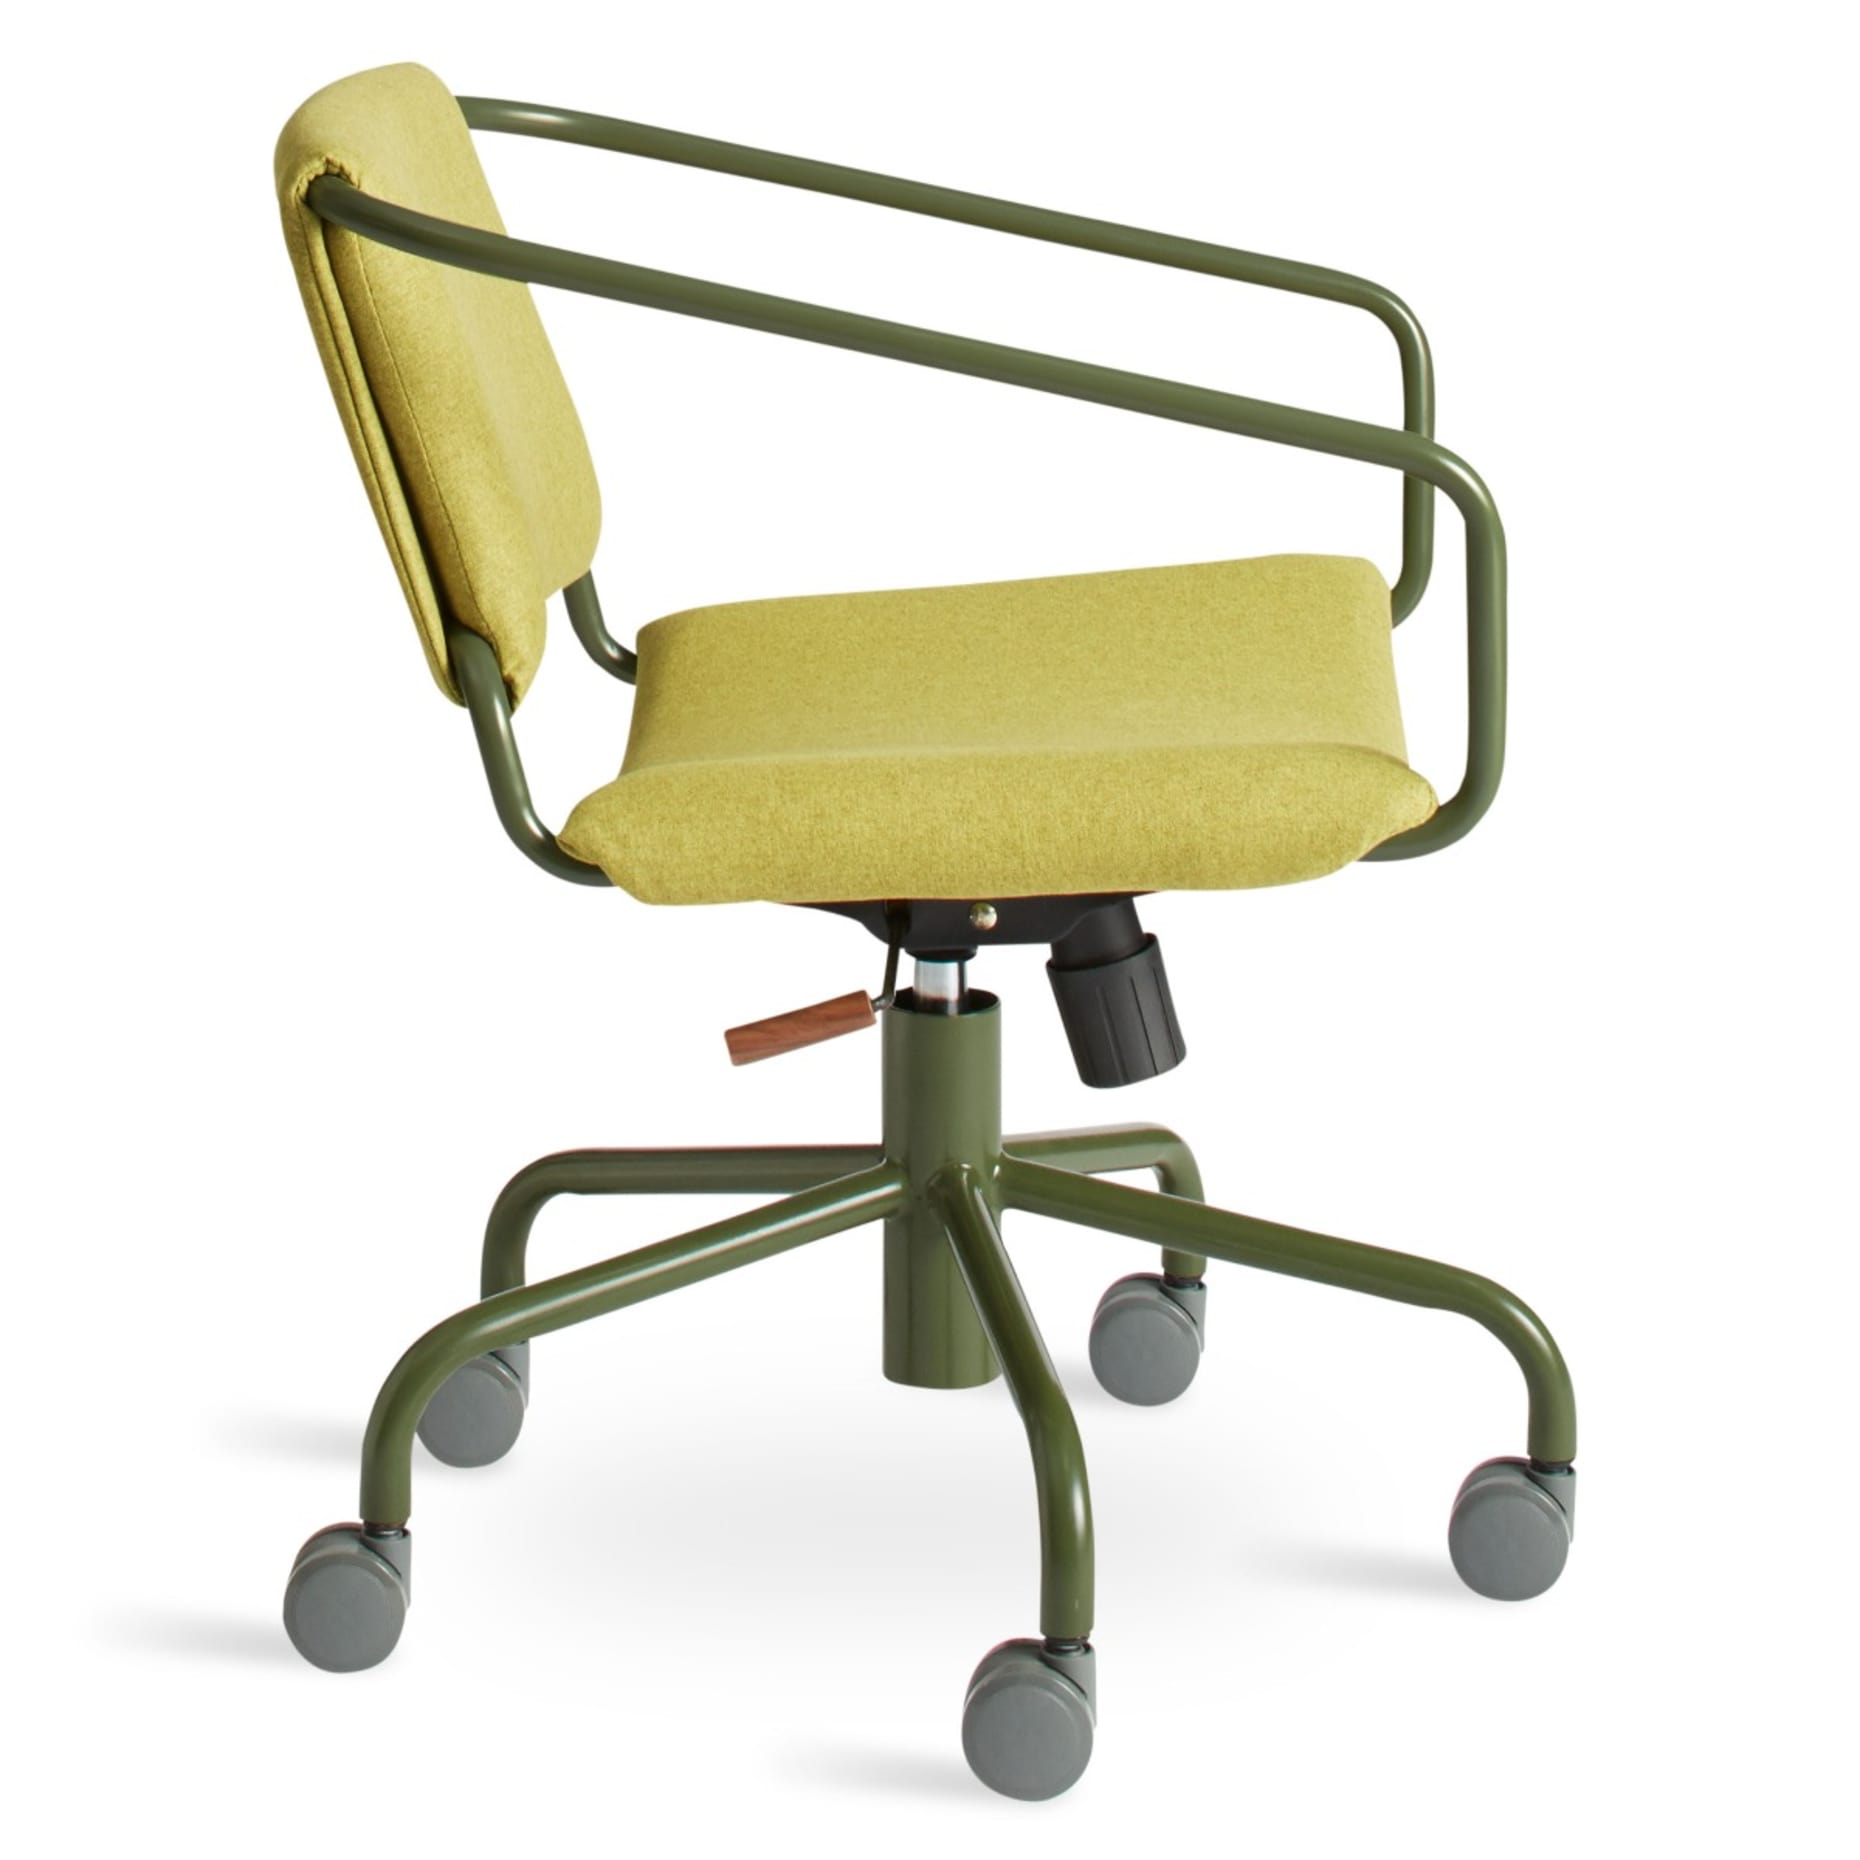 dy1 tchair gr side high daily task chair gingrich green.2x 1